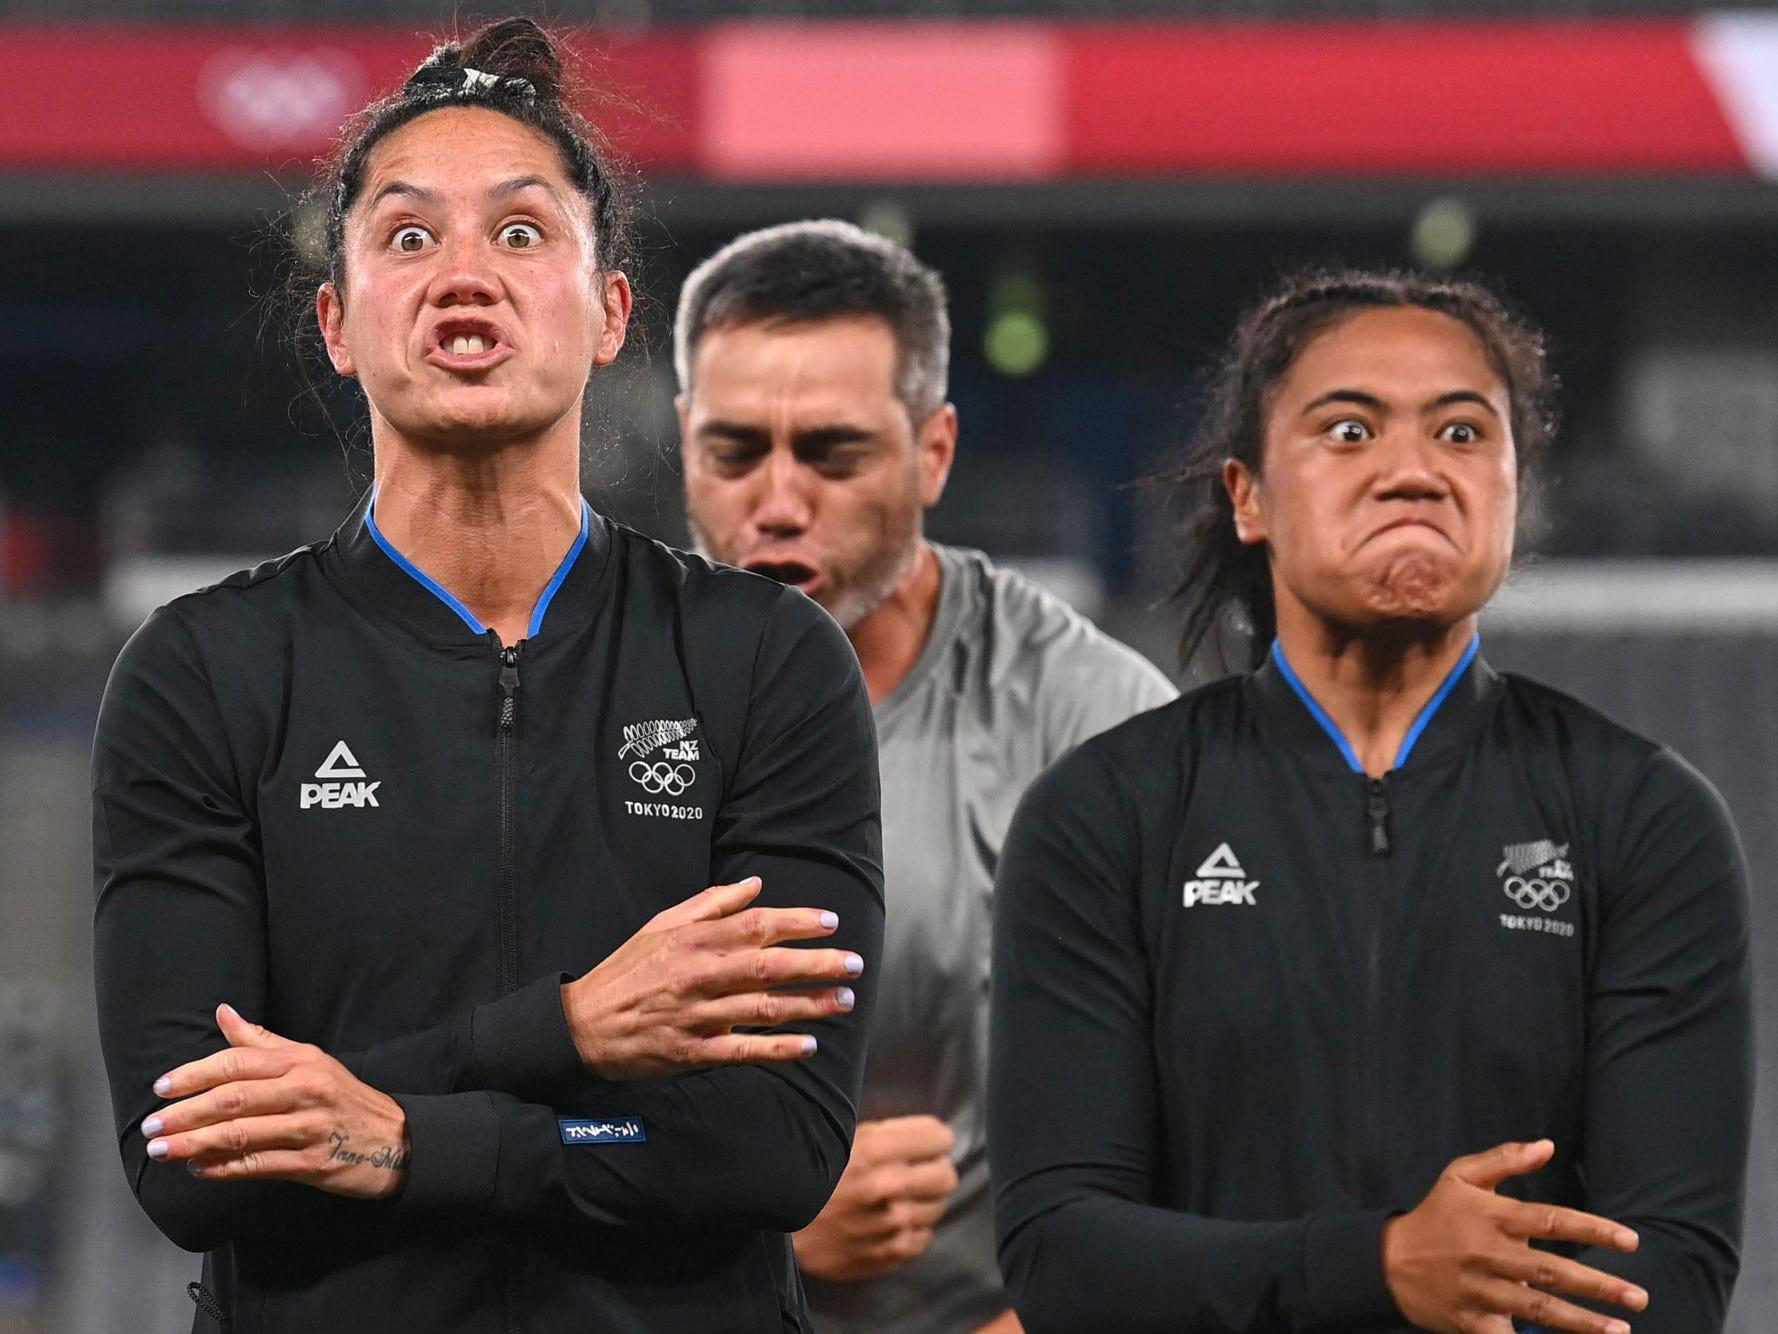 New Zealand's women's rugby won gold and unleashed an emotional haka, a traditional Māori celebration dance